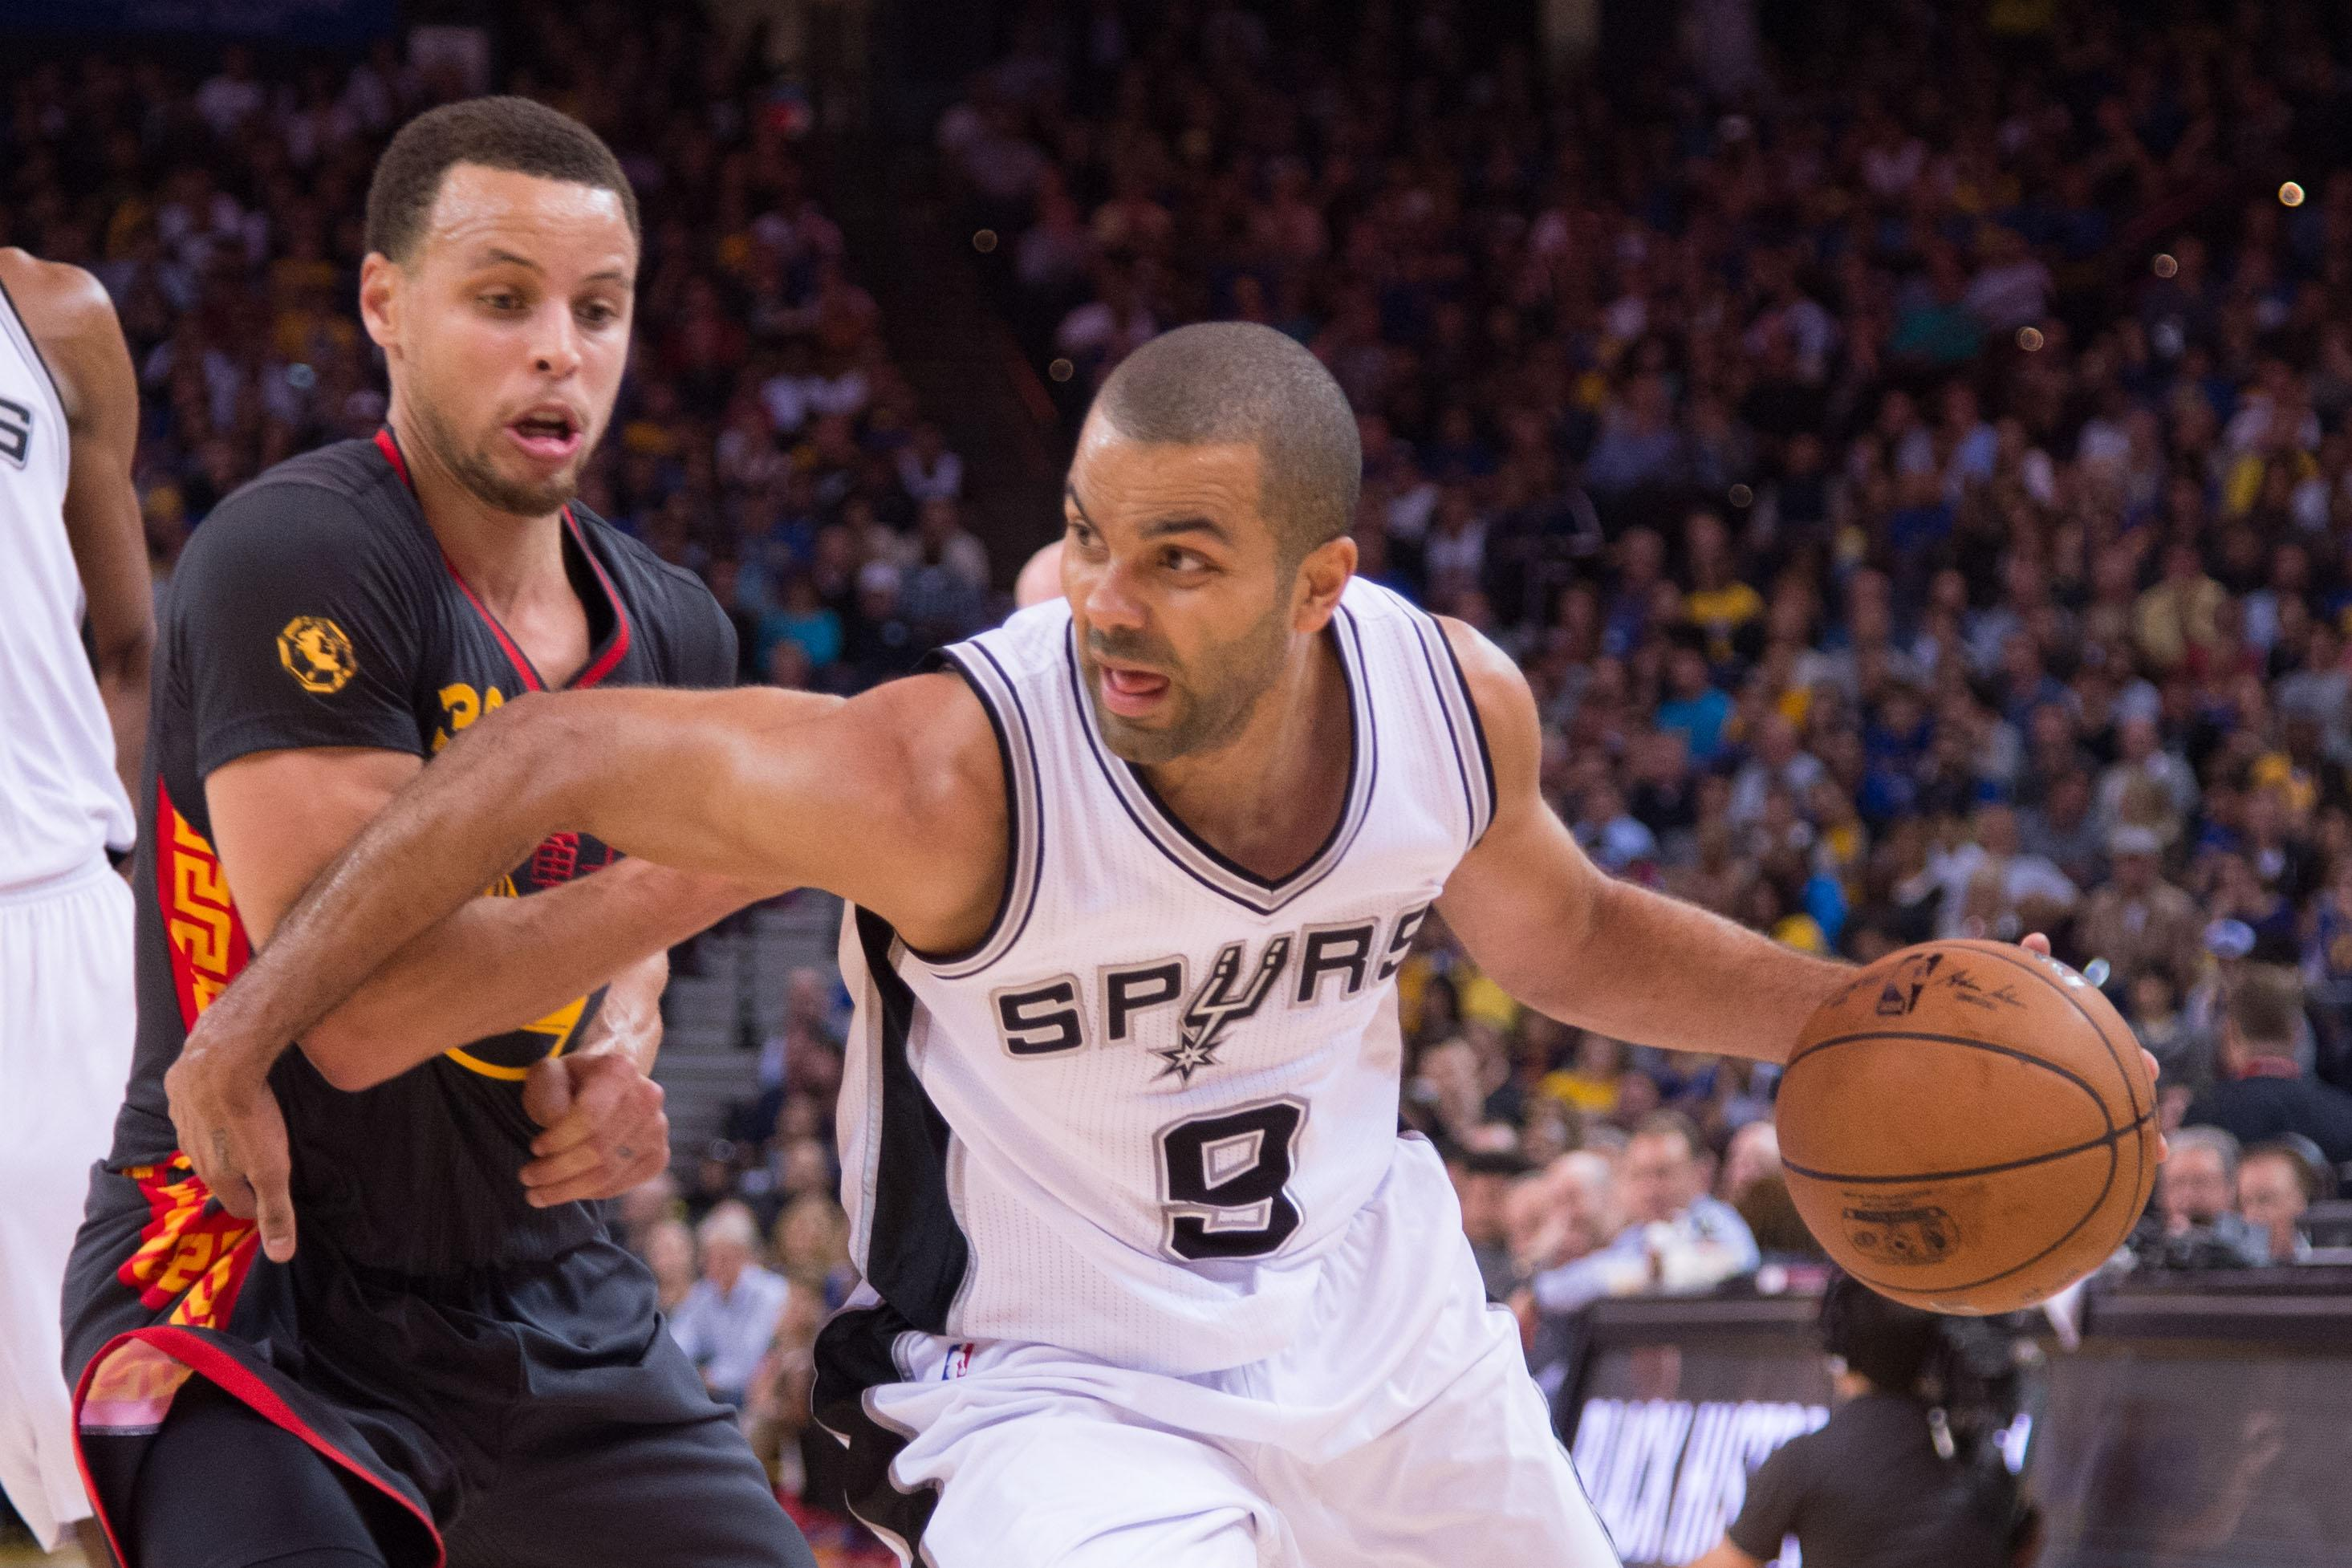 Tony Parker faces biggest challenge of his career as Spurs try to find old form